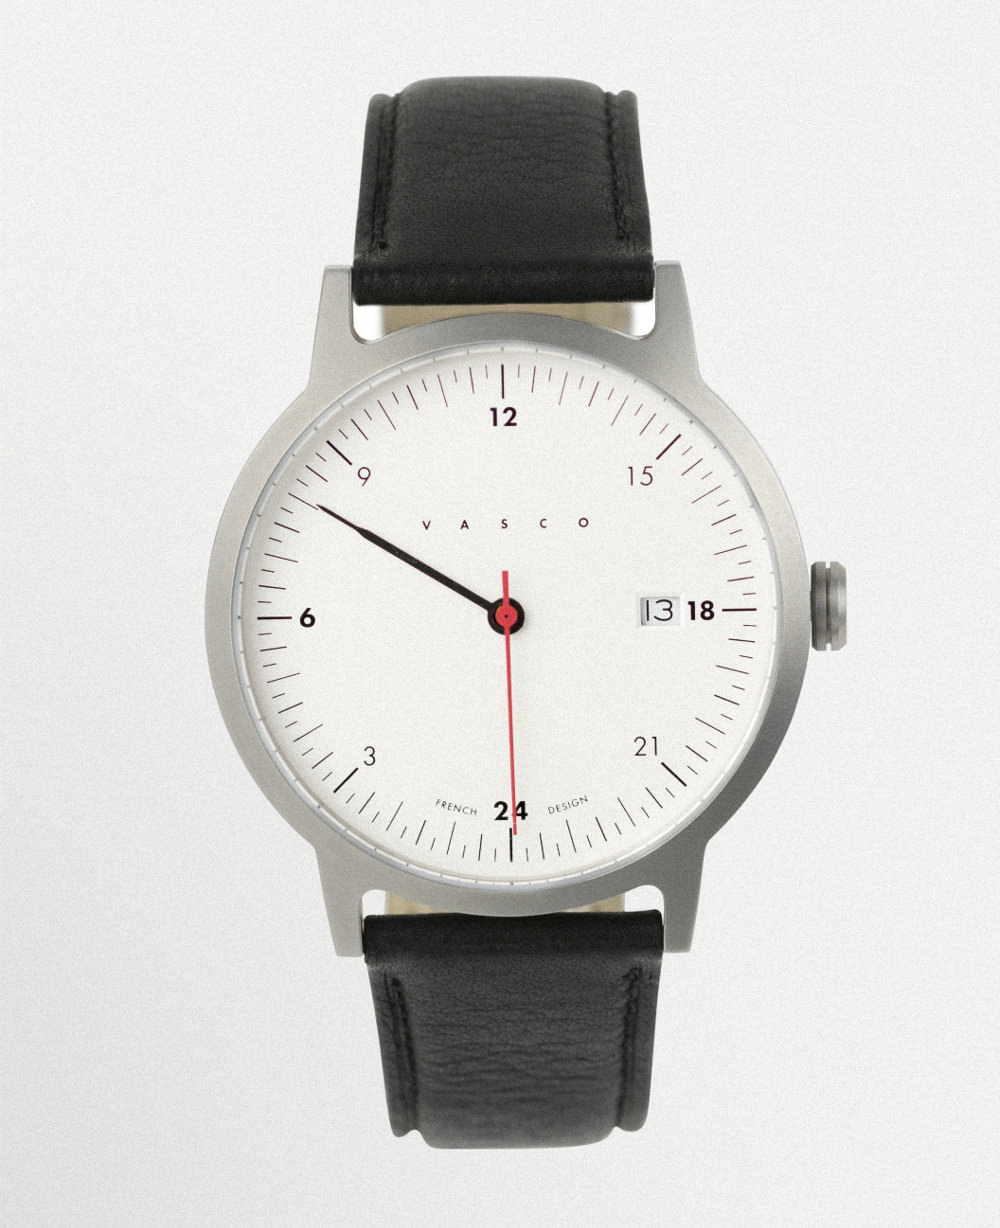 Crowdfunding deux nouvelles montres par vasco watch blog esprit design for Vasco watches